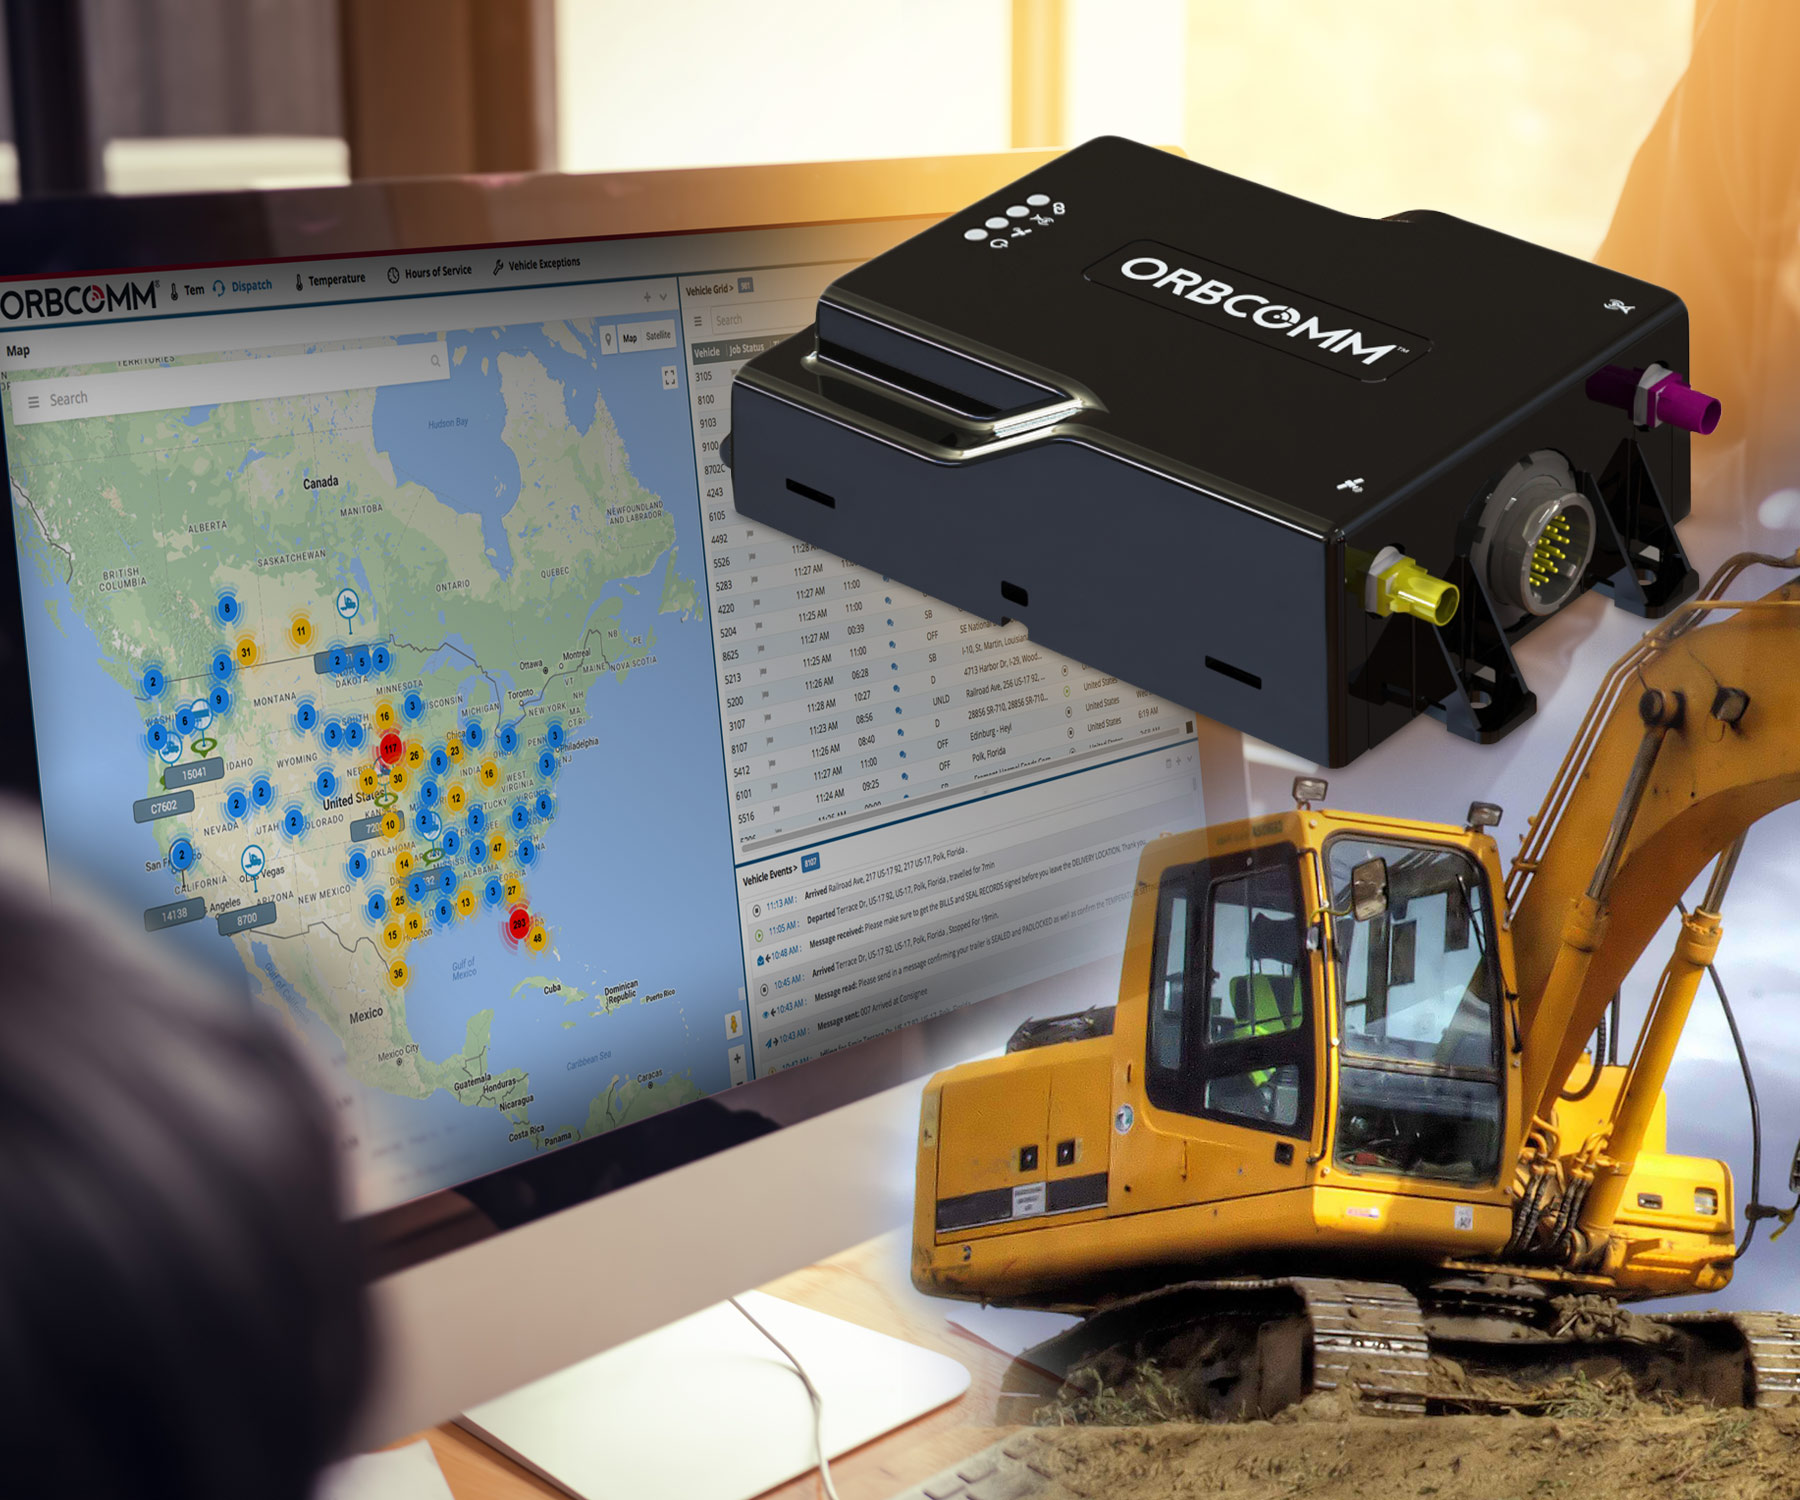 Orbcomm telematics device and online platform